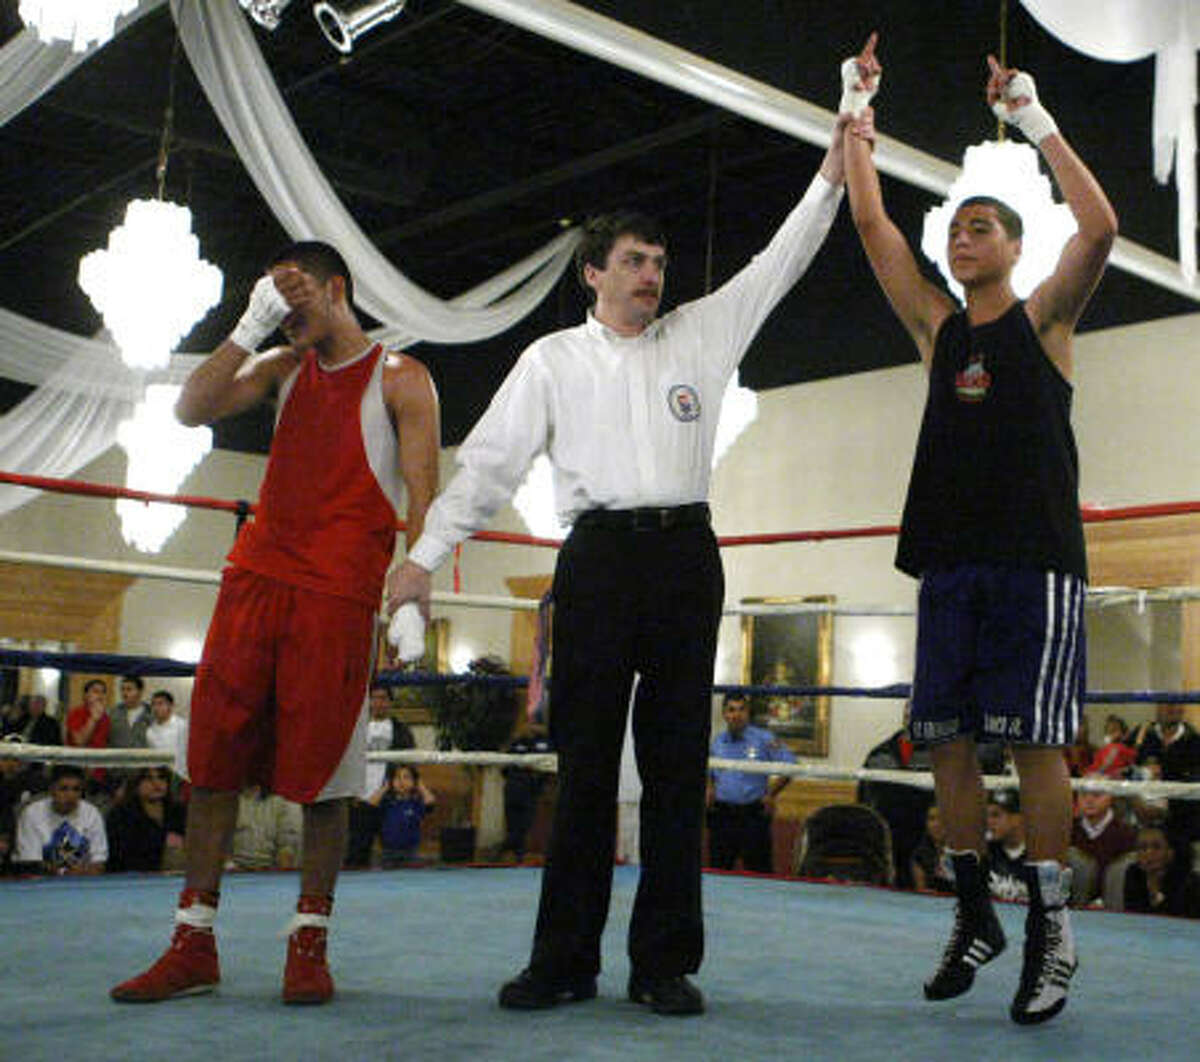 Day 2, Thursday, Jan. 29: Nolberto Blanco of Untimate Warriors reacts as he wins his bout over Antonio Capulin of Screaming Eagles in the 132-pound Junior Olympic Open class during the Southwest Regional Golden Gloves Boxing Tournament.